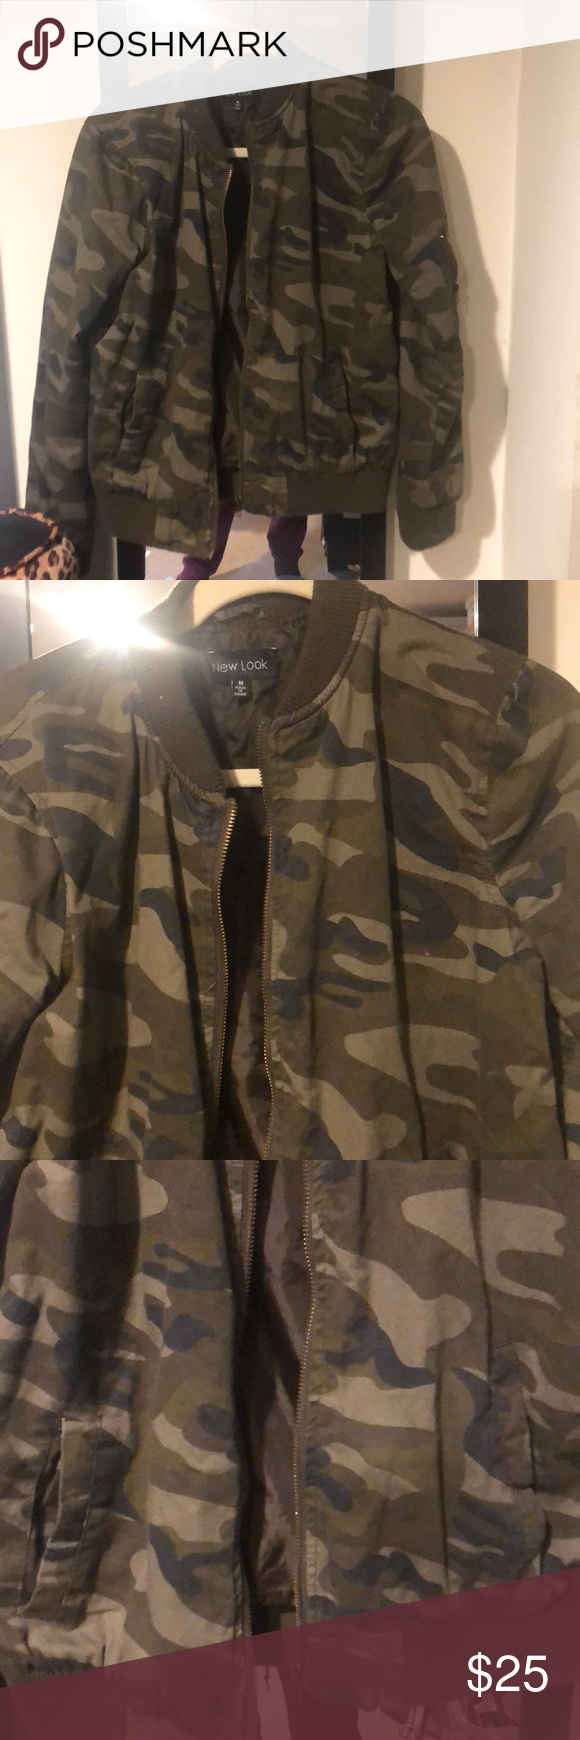 Army Print Bomber Jacket (With images) Printed bomber